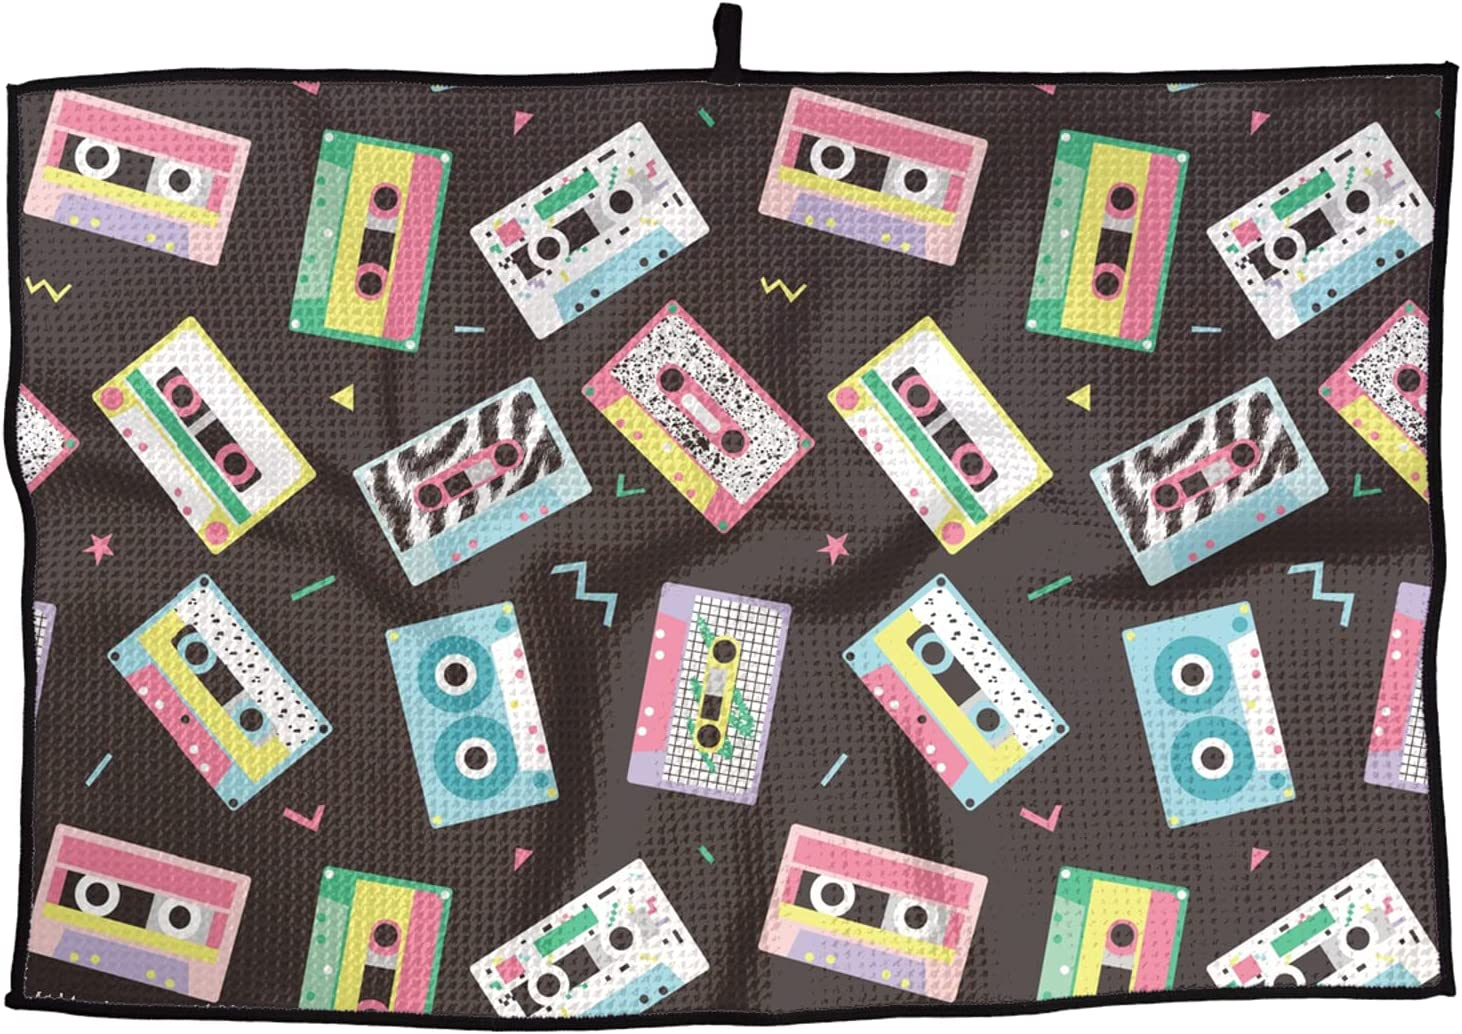 Soft Superfine Golf Towel Max 44% OFF Audio Tapes Style Quick-D in Retro Max 58% OFF 80s